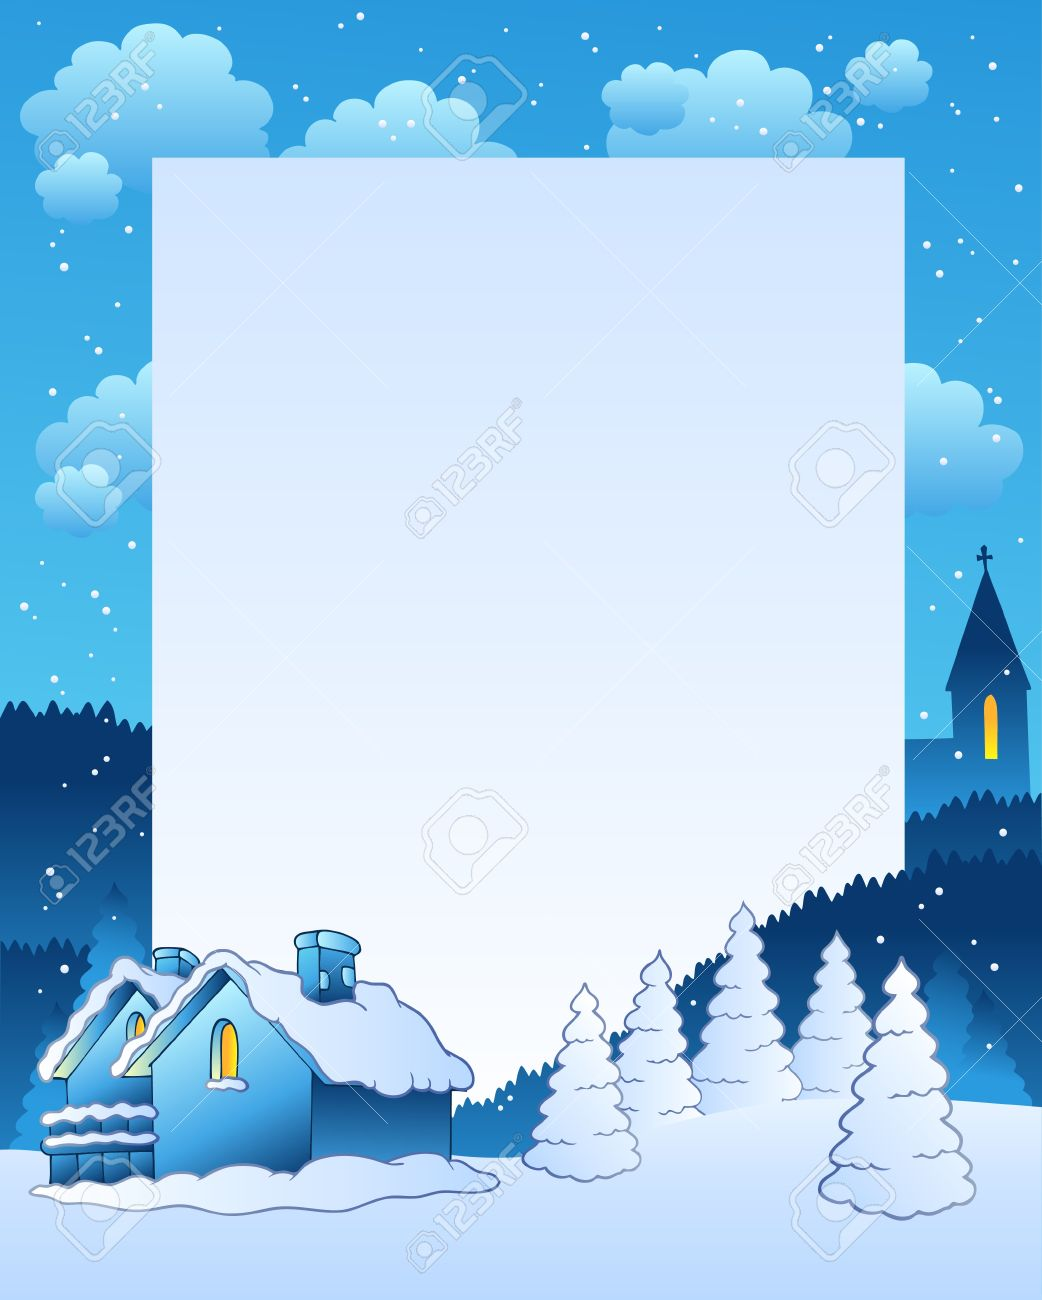 Winter frame with small village - illustration. Stock Vector - 8350130